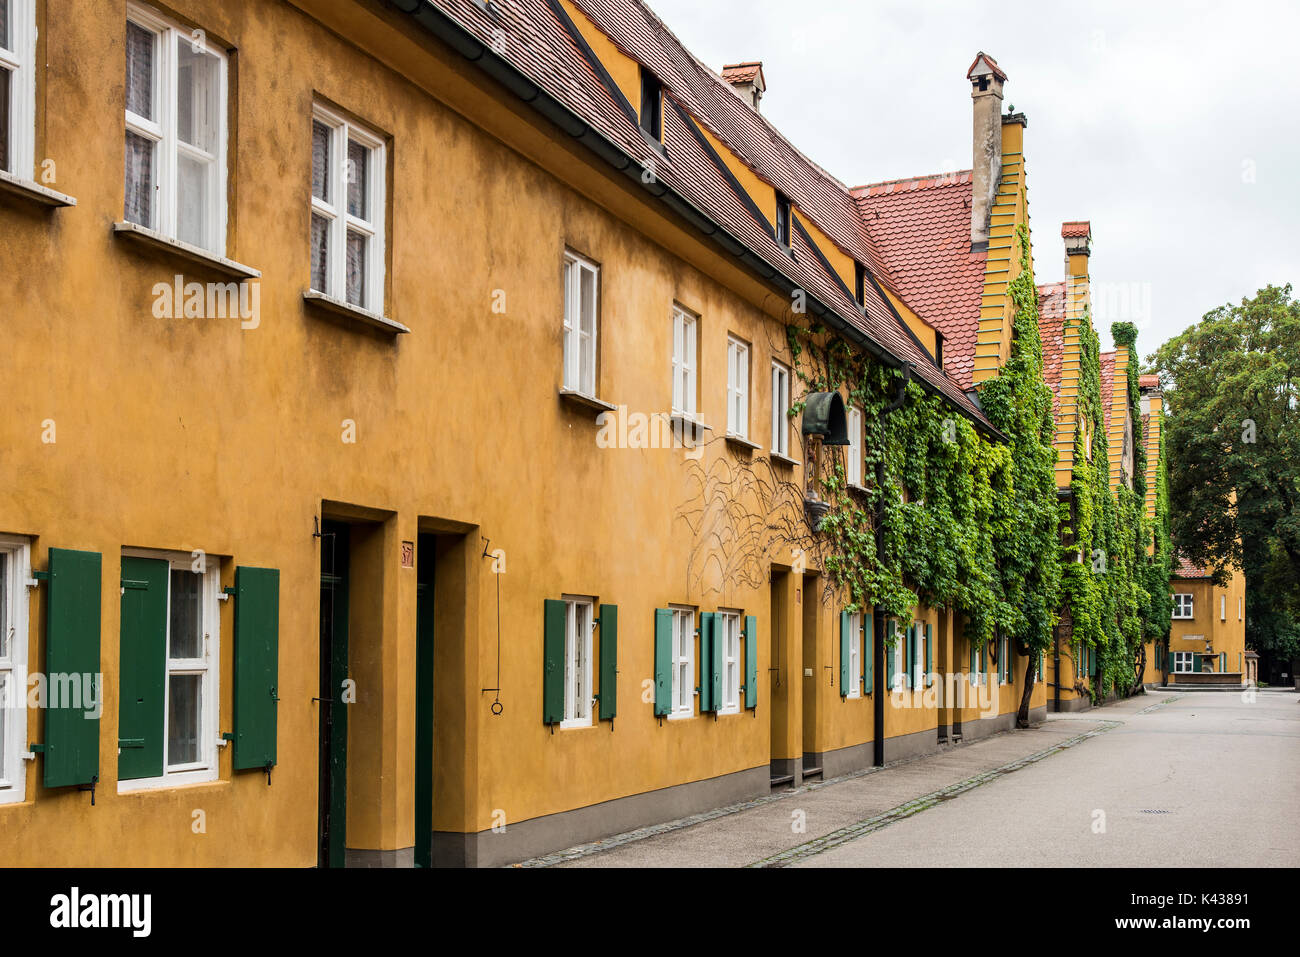 Street view of the Fuggerei settlement, the world's oldest social housing complex still in use, Augsburg, Bavaria, Germany - Stock Image